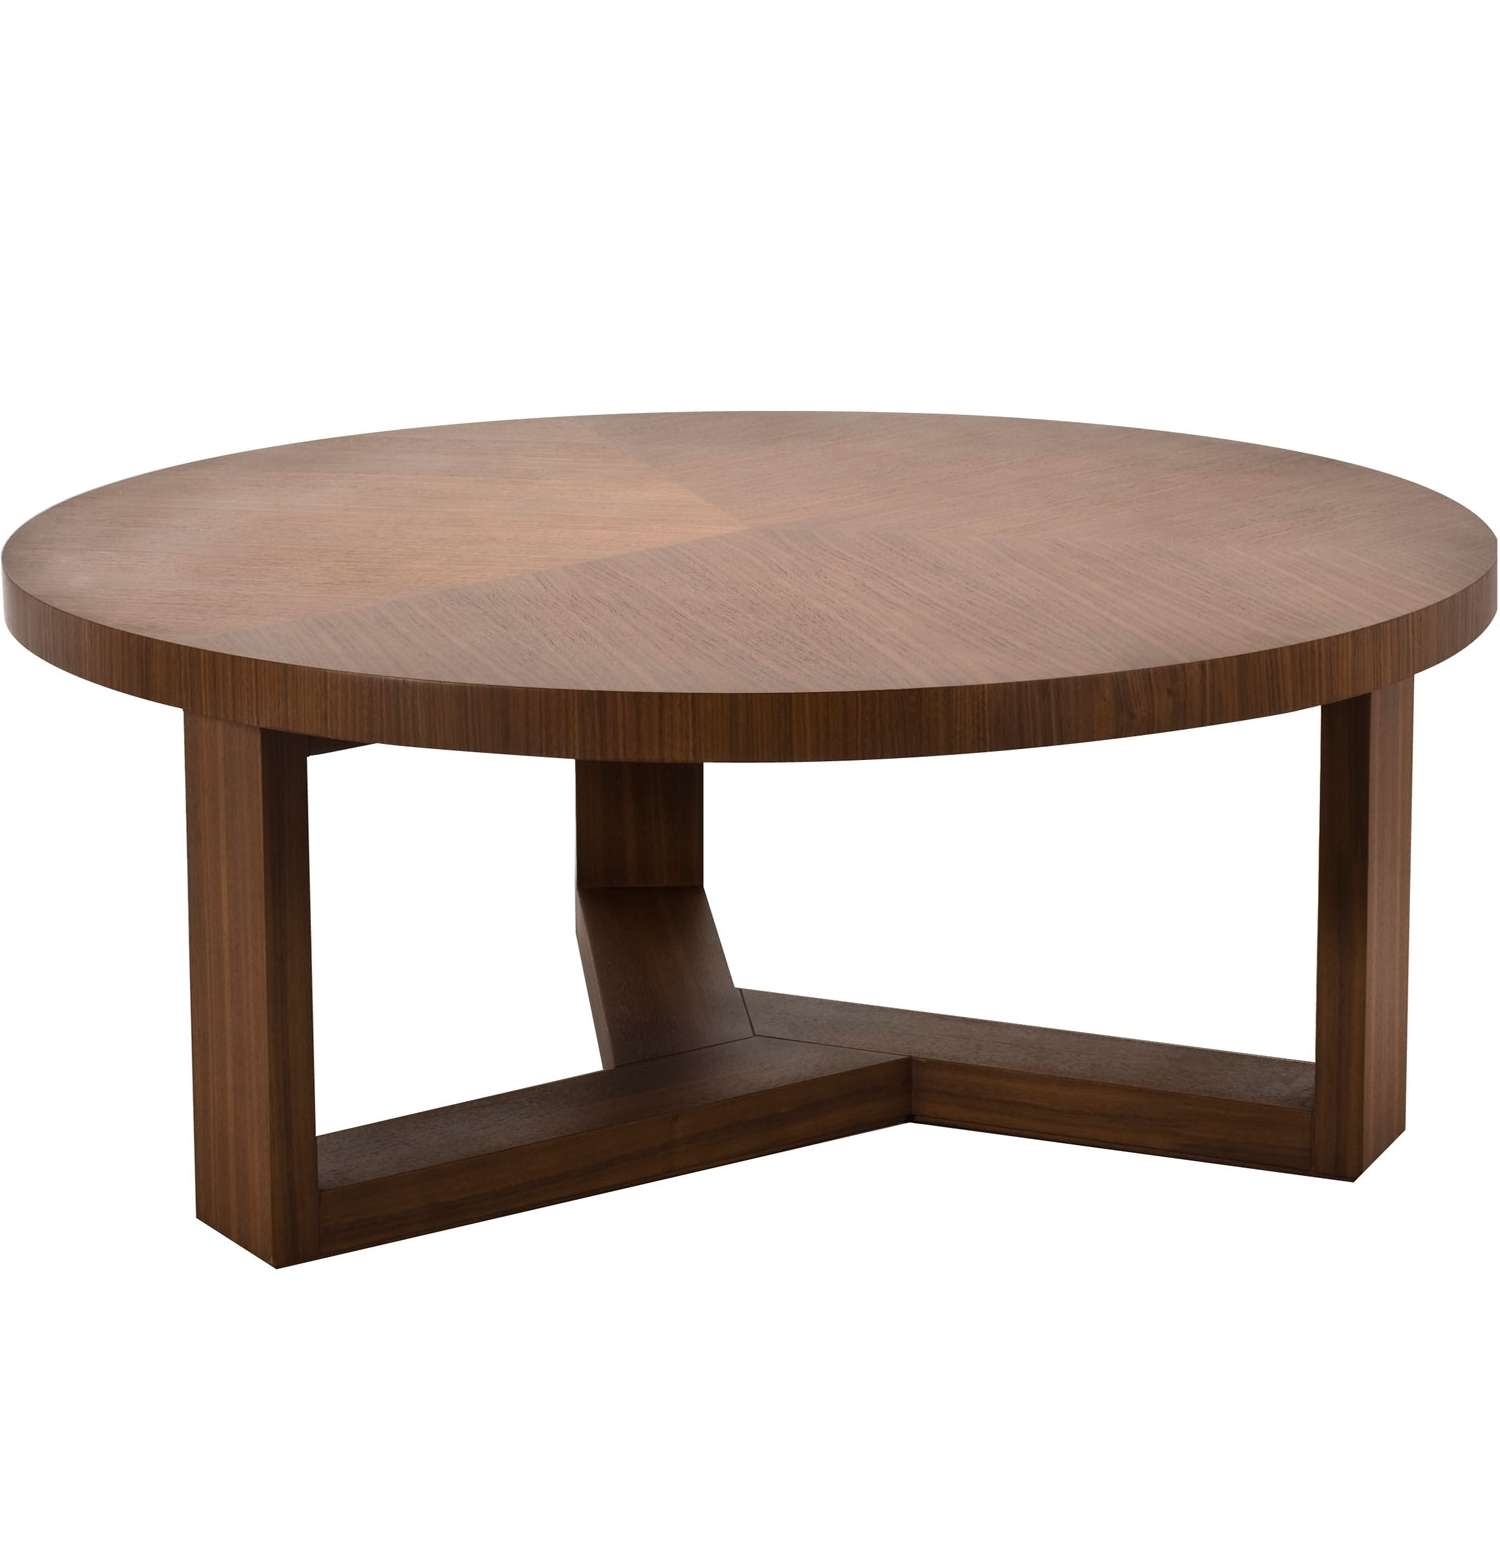 Well Liked Small Circular Coffee Table For Coffee Tables : Round Table Coffee Glass Top Circle Square And (View 6 of 20)